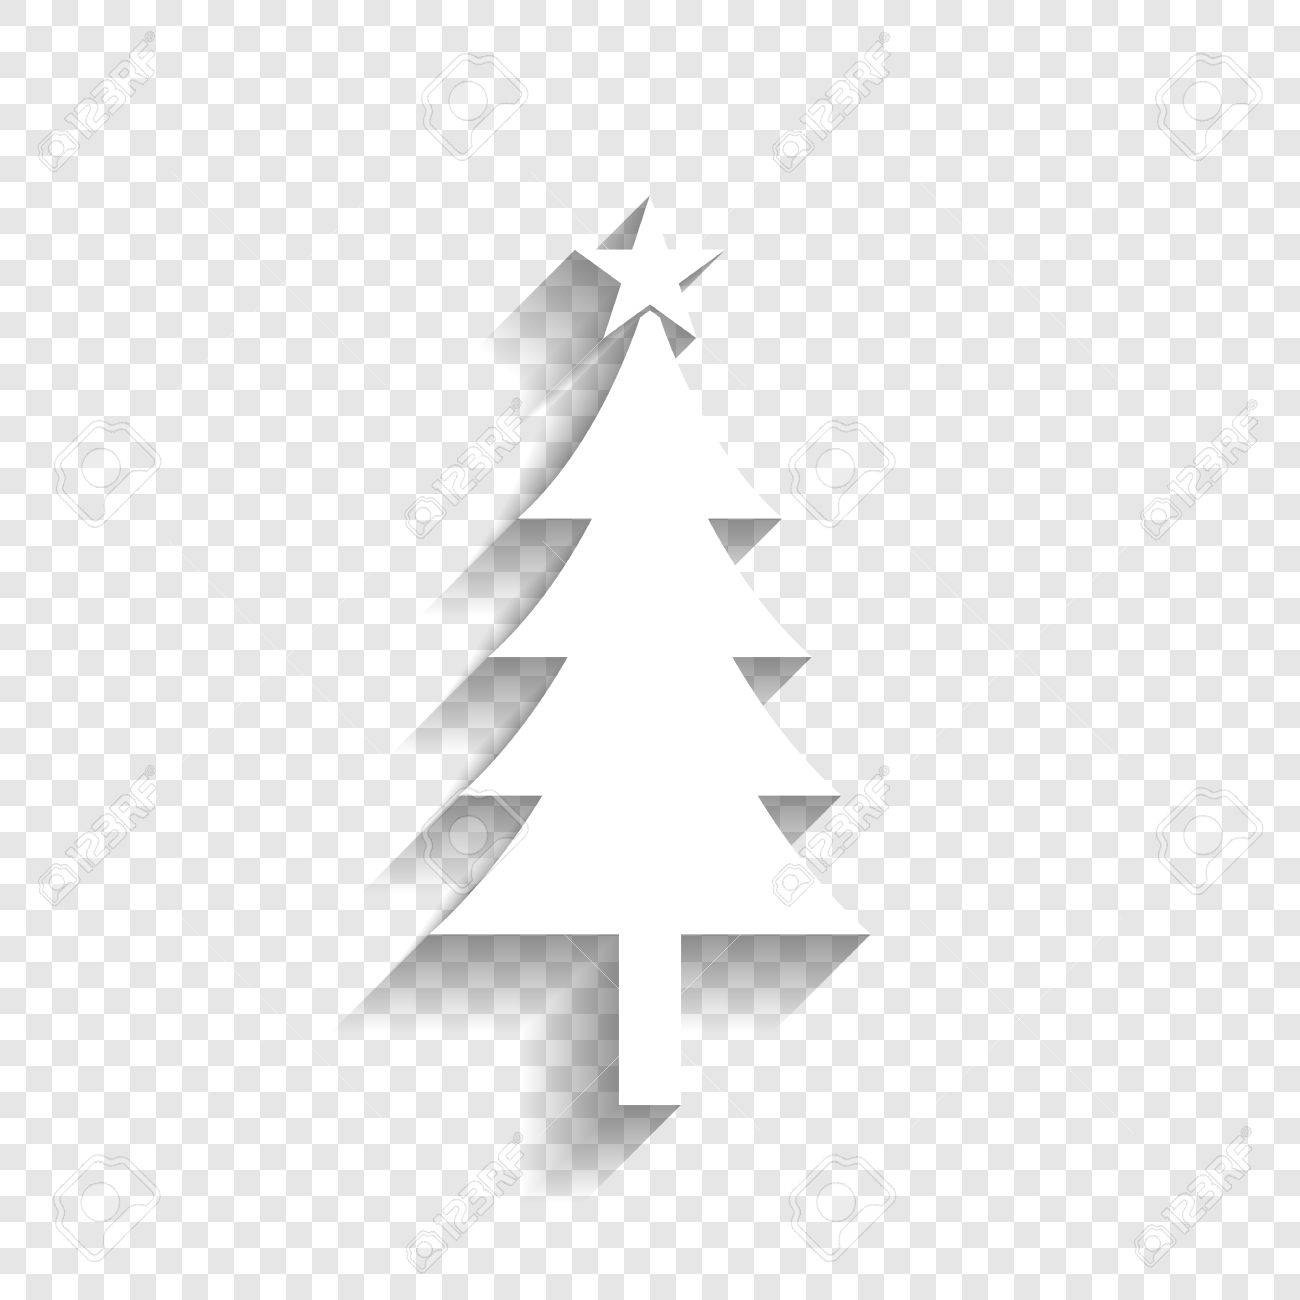 new year tree sign vector white icon with soft shadow on transparent royalty free cliparts vectors and stock illustration image 80930155 123rf com